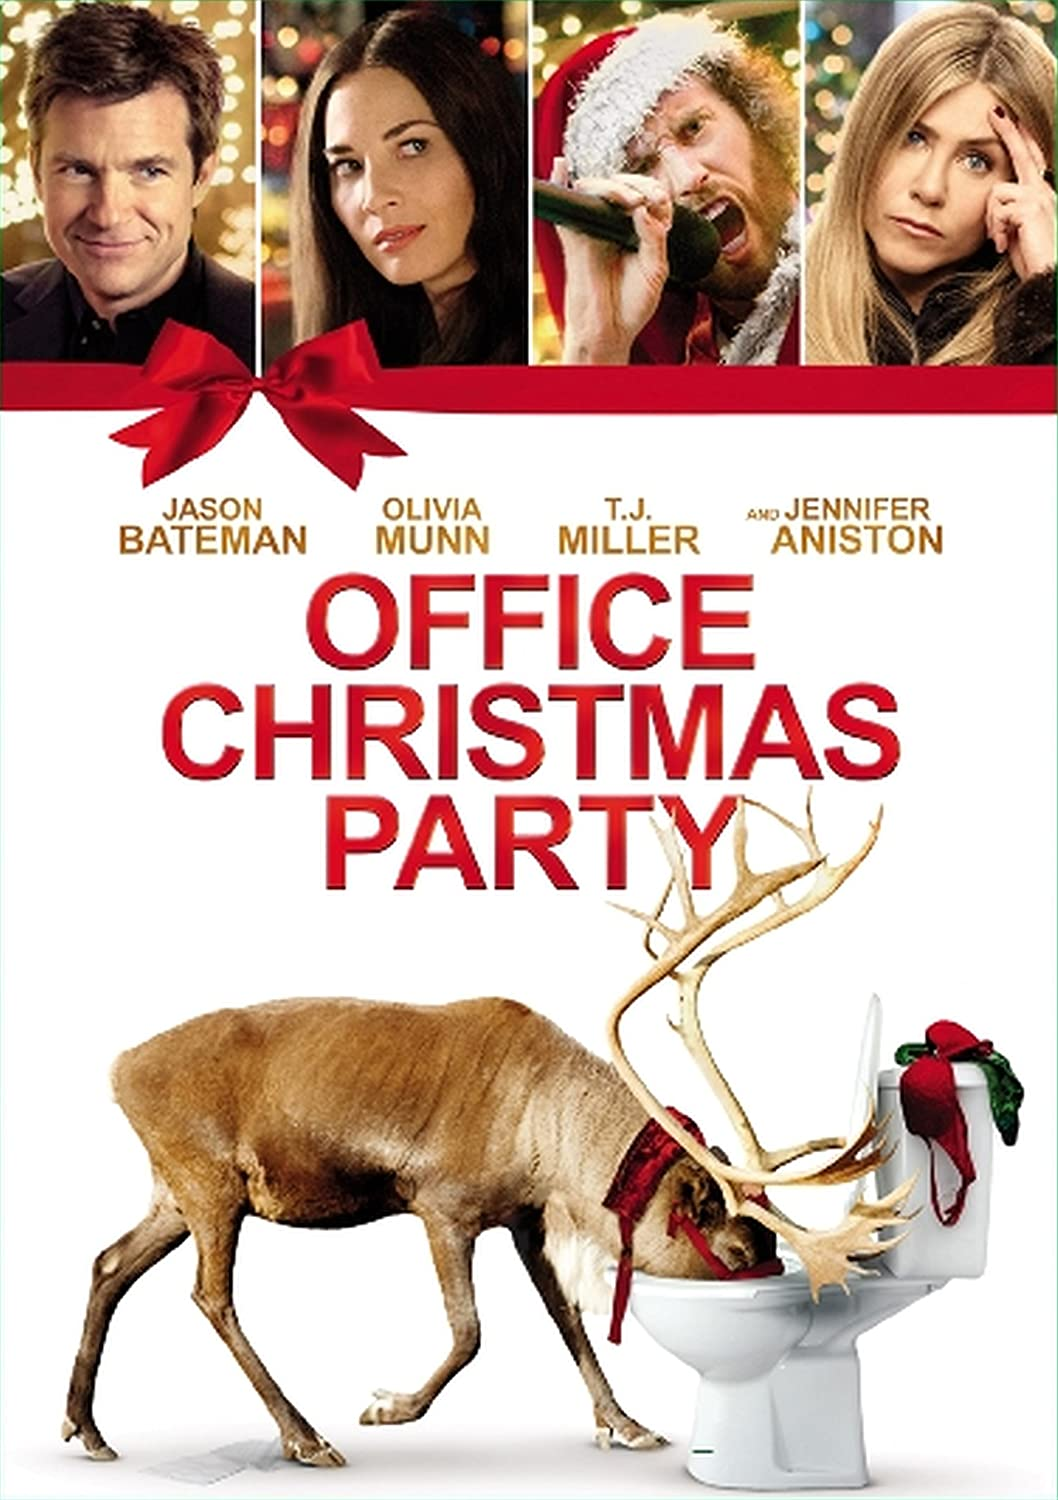 Amazon.com: Office Christmas Party [DVD]: Jason Bateman, Olivia Munn ...